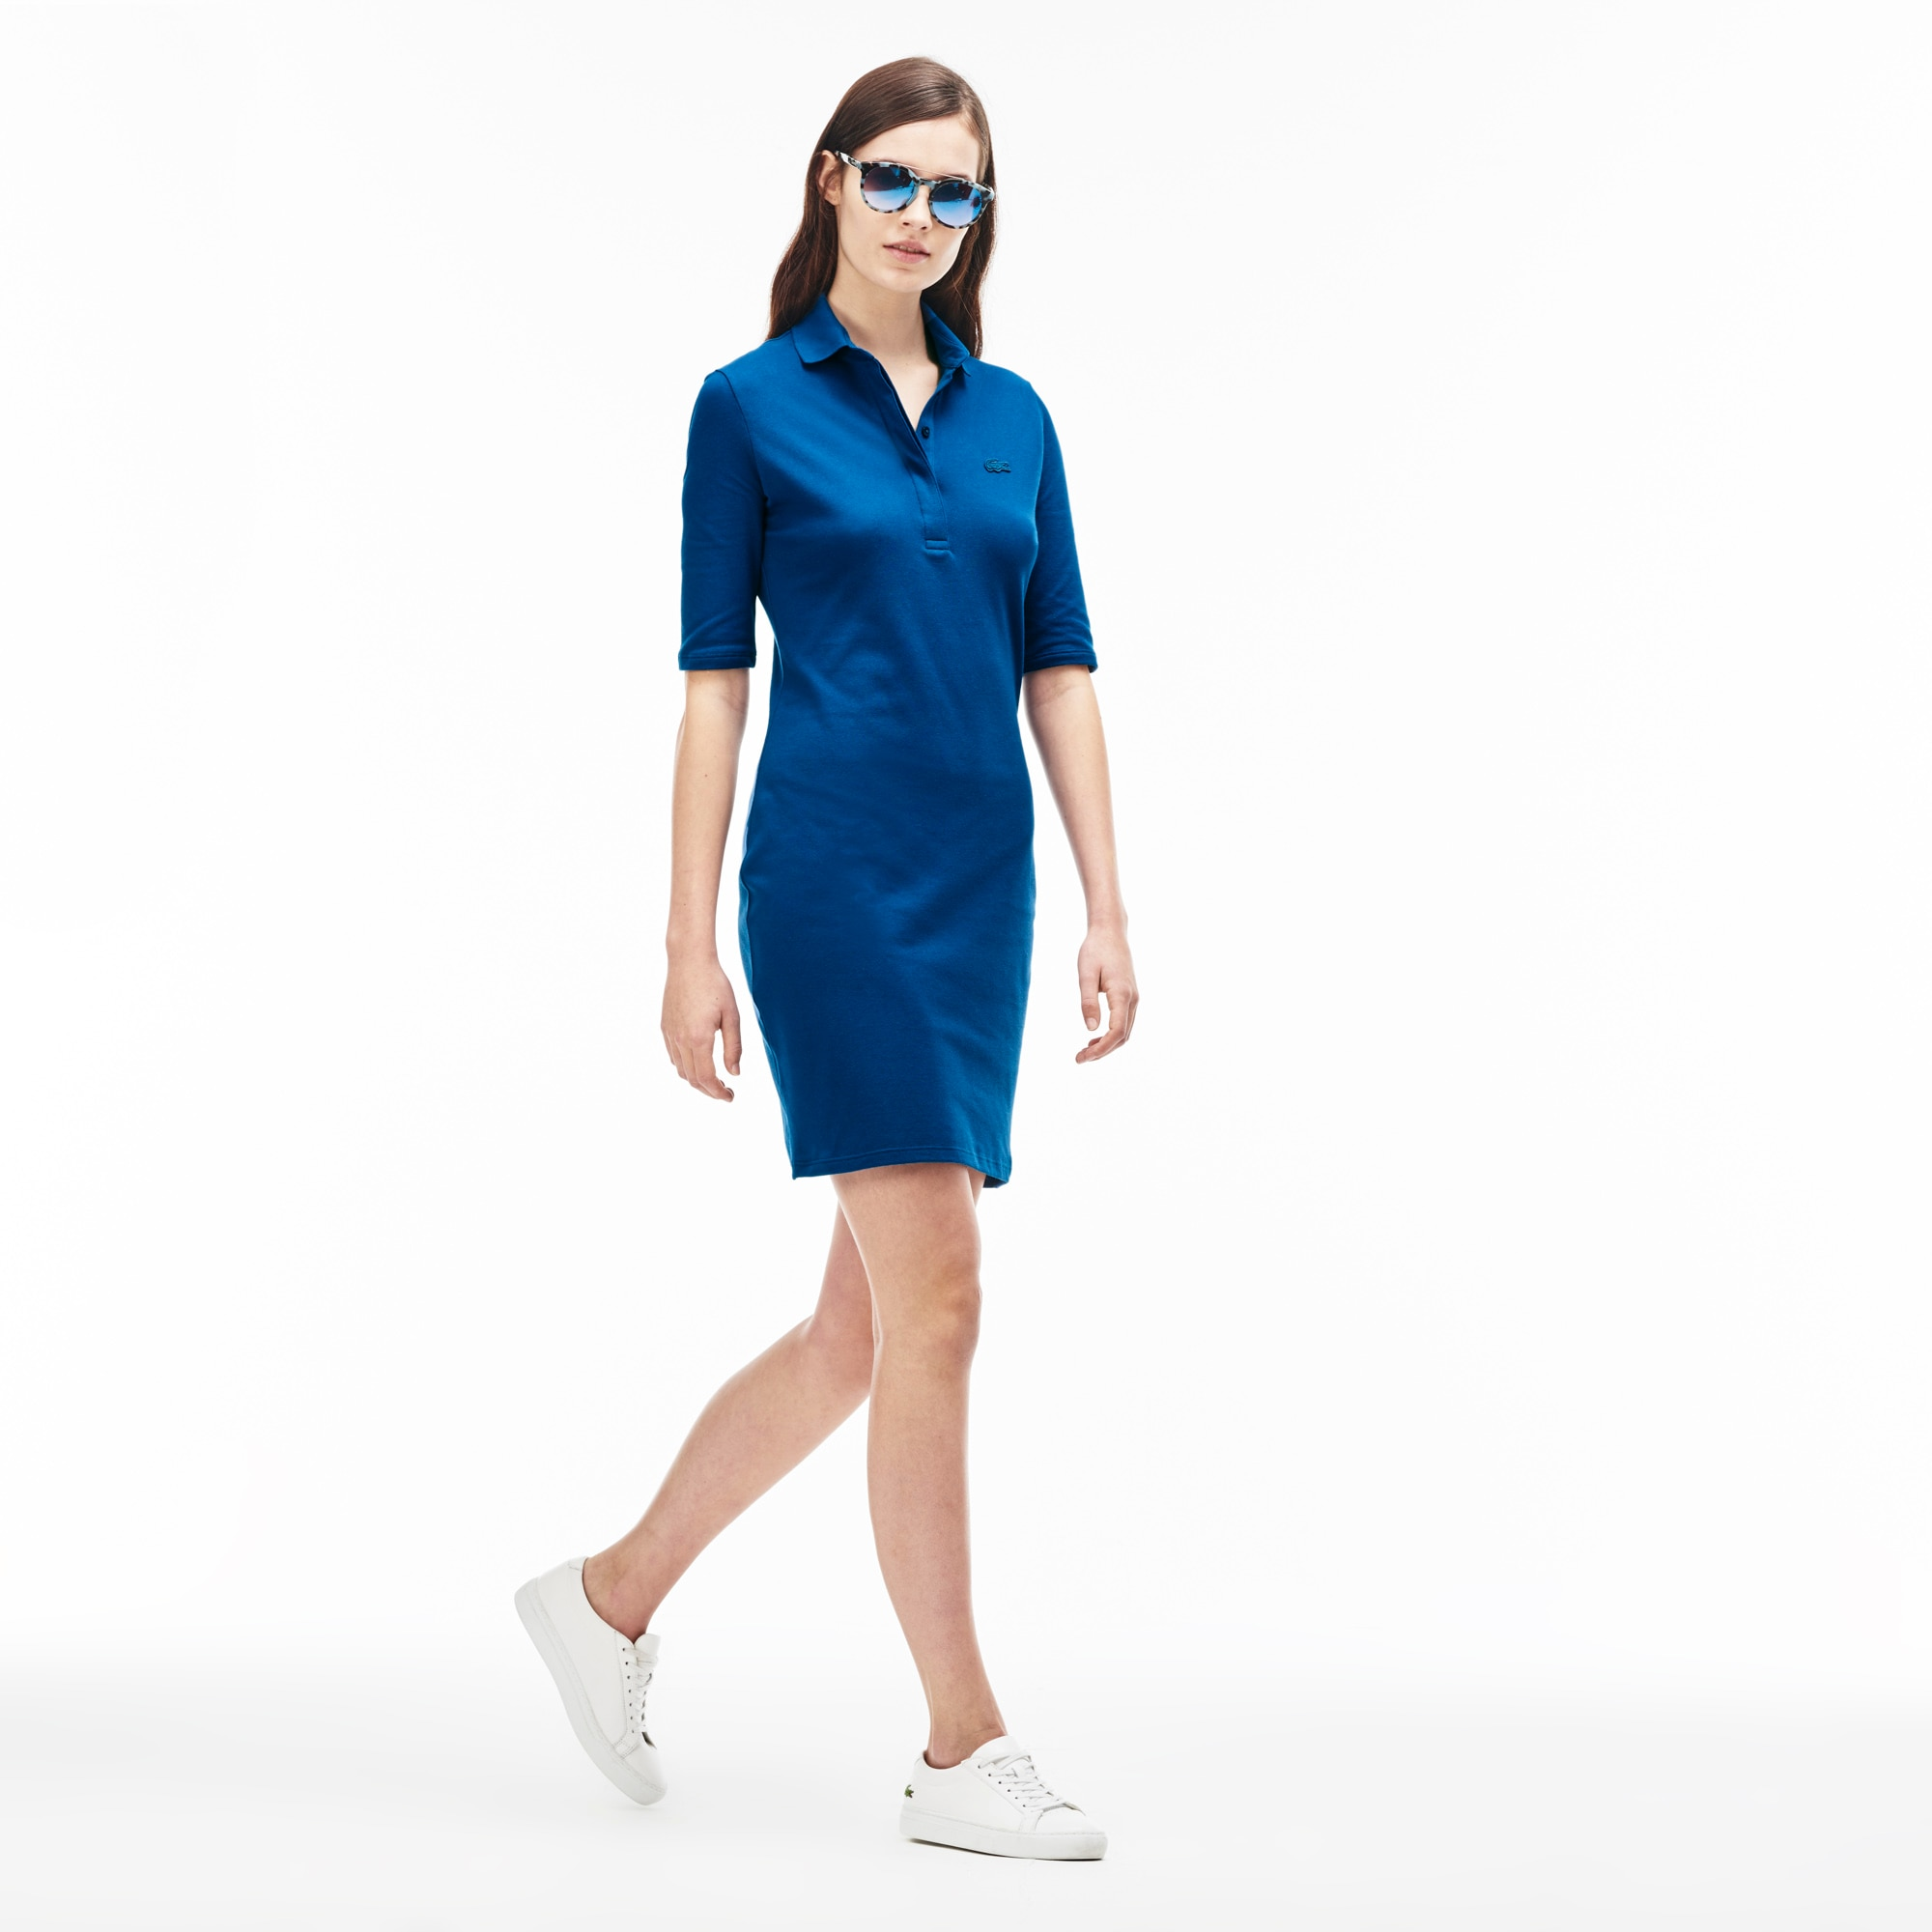 Women's Quarter Sleeve Piqué Polo Dress